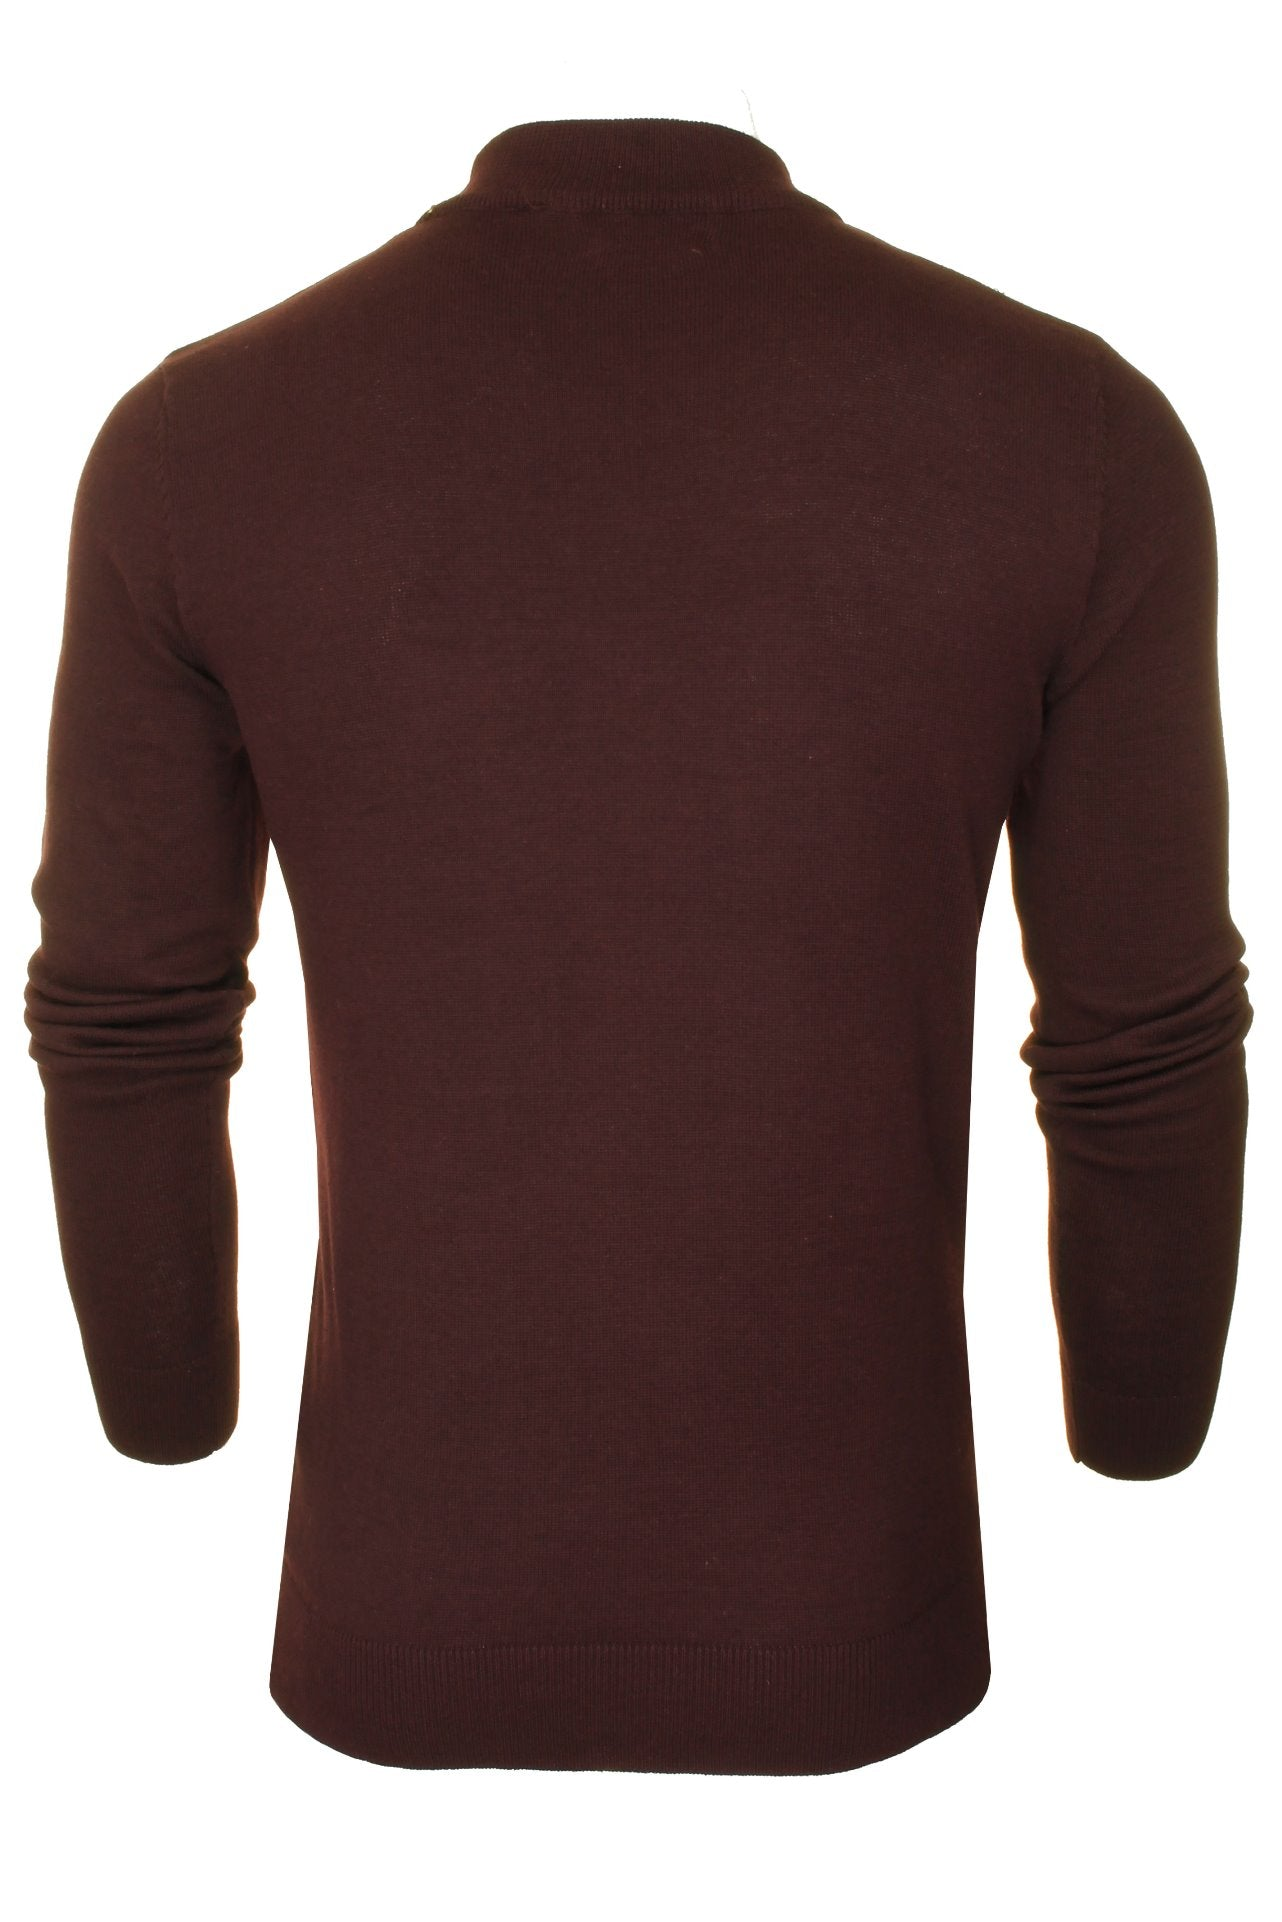 Brave Soul Men's Turtle Neck Jumper_03_Mk-181Turtle-X_Ox Blood